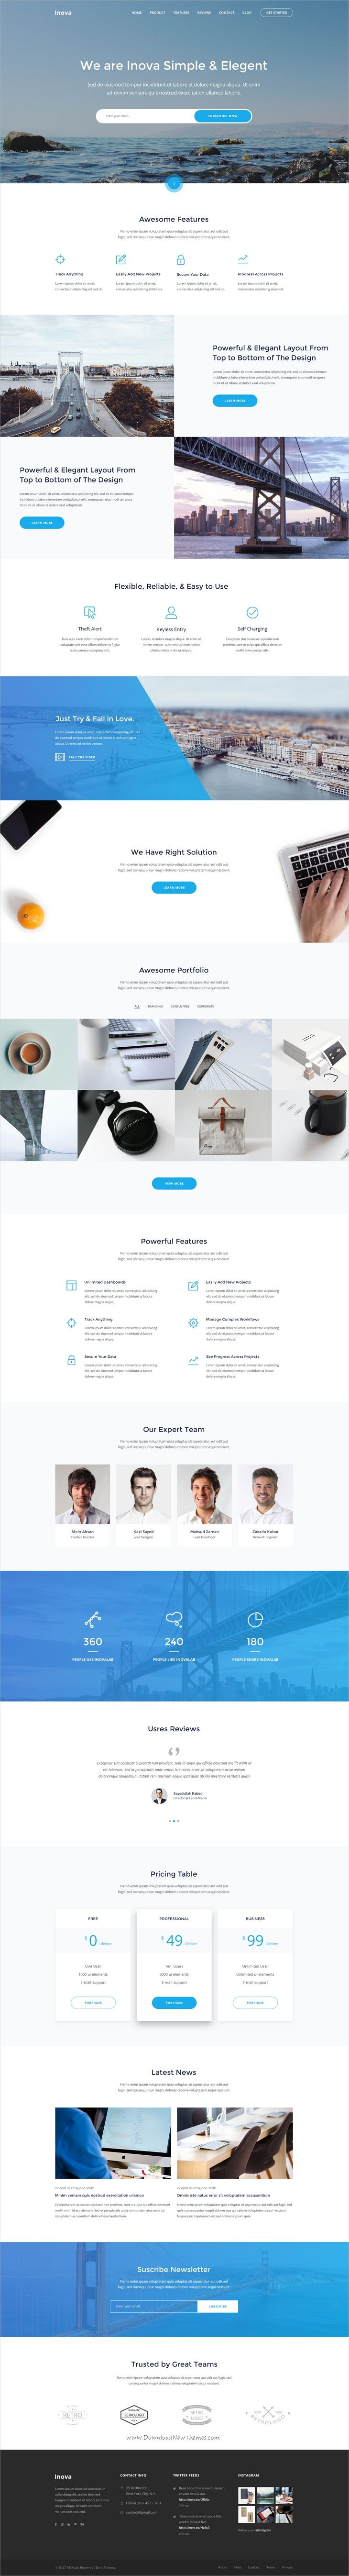 Inova is a creative PSD #landingpage #template for #startup Product, SaaS, App, or marking websites with 22 organized PSD pages download now➩ https://themeforest.net/item/inova-product-saas-app-startup-marketing-landing-page/19486443?ref=Datasata